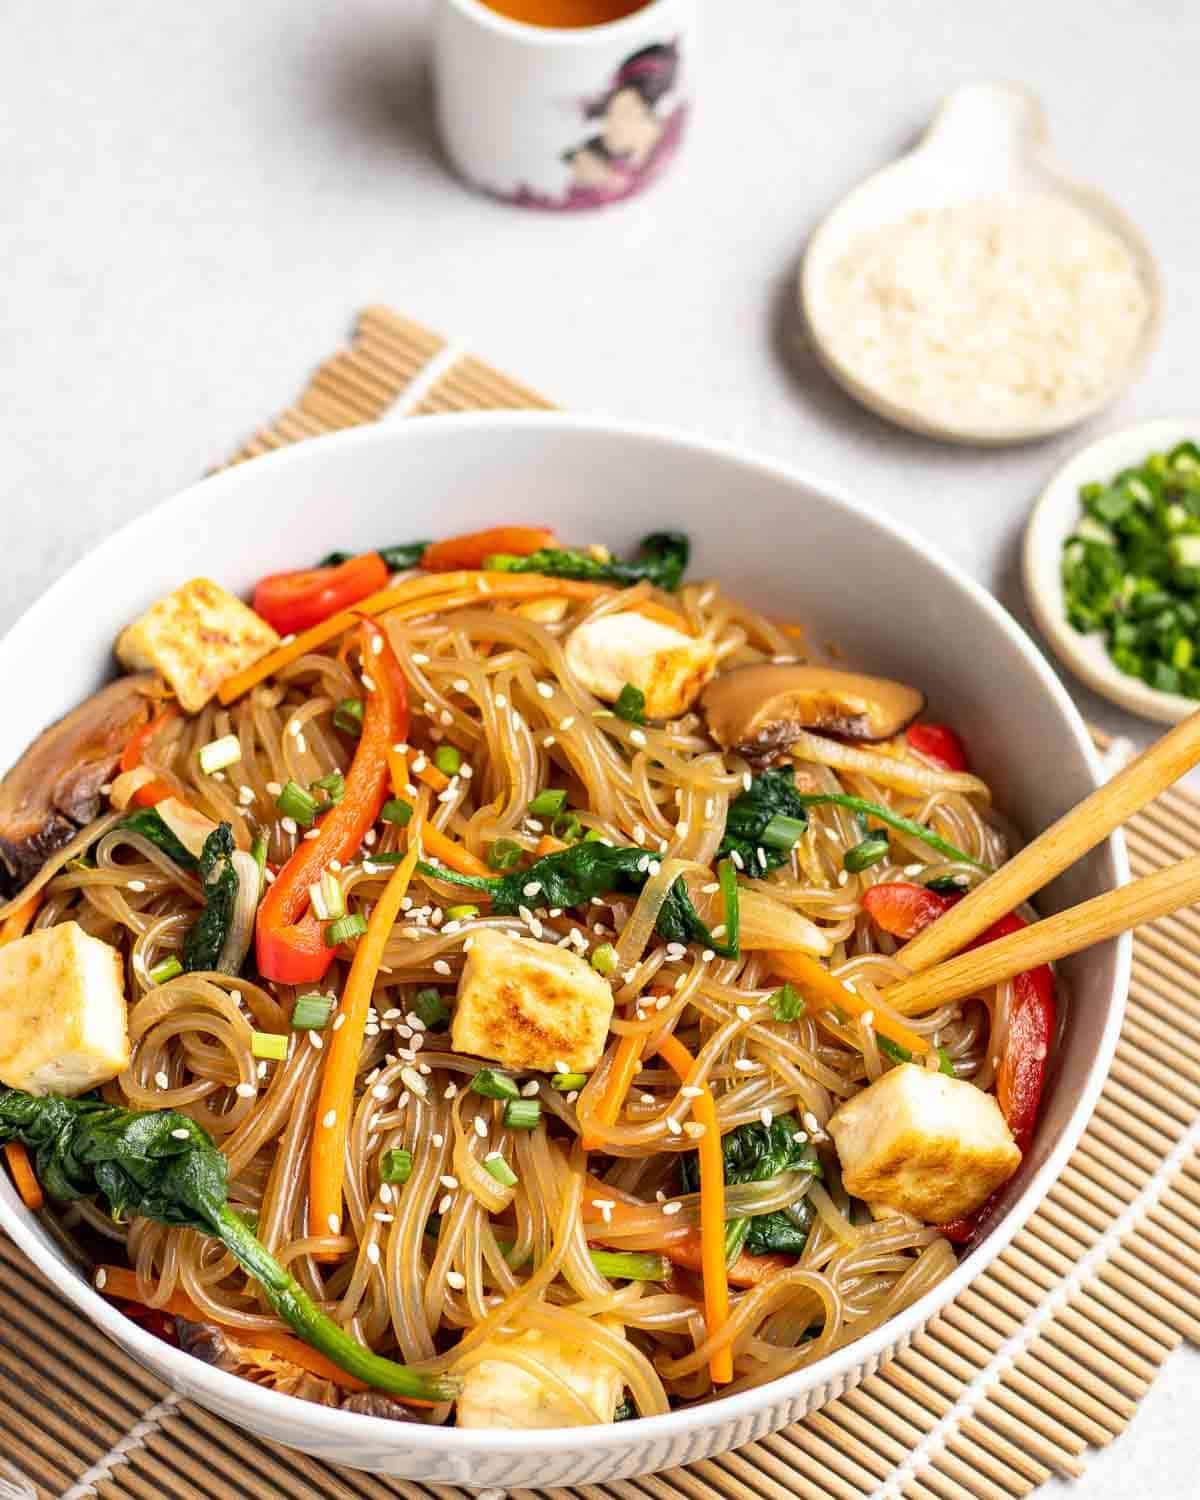 Japchae in plate with chopsticks. There are dishes of chopped scallions and sesame seeds, and a cup of tea in the background.